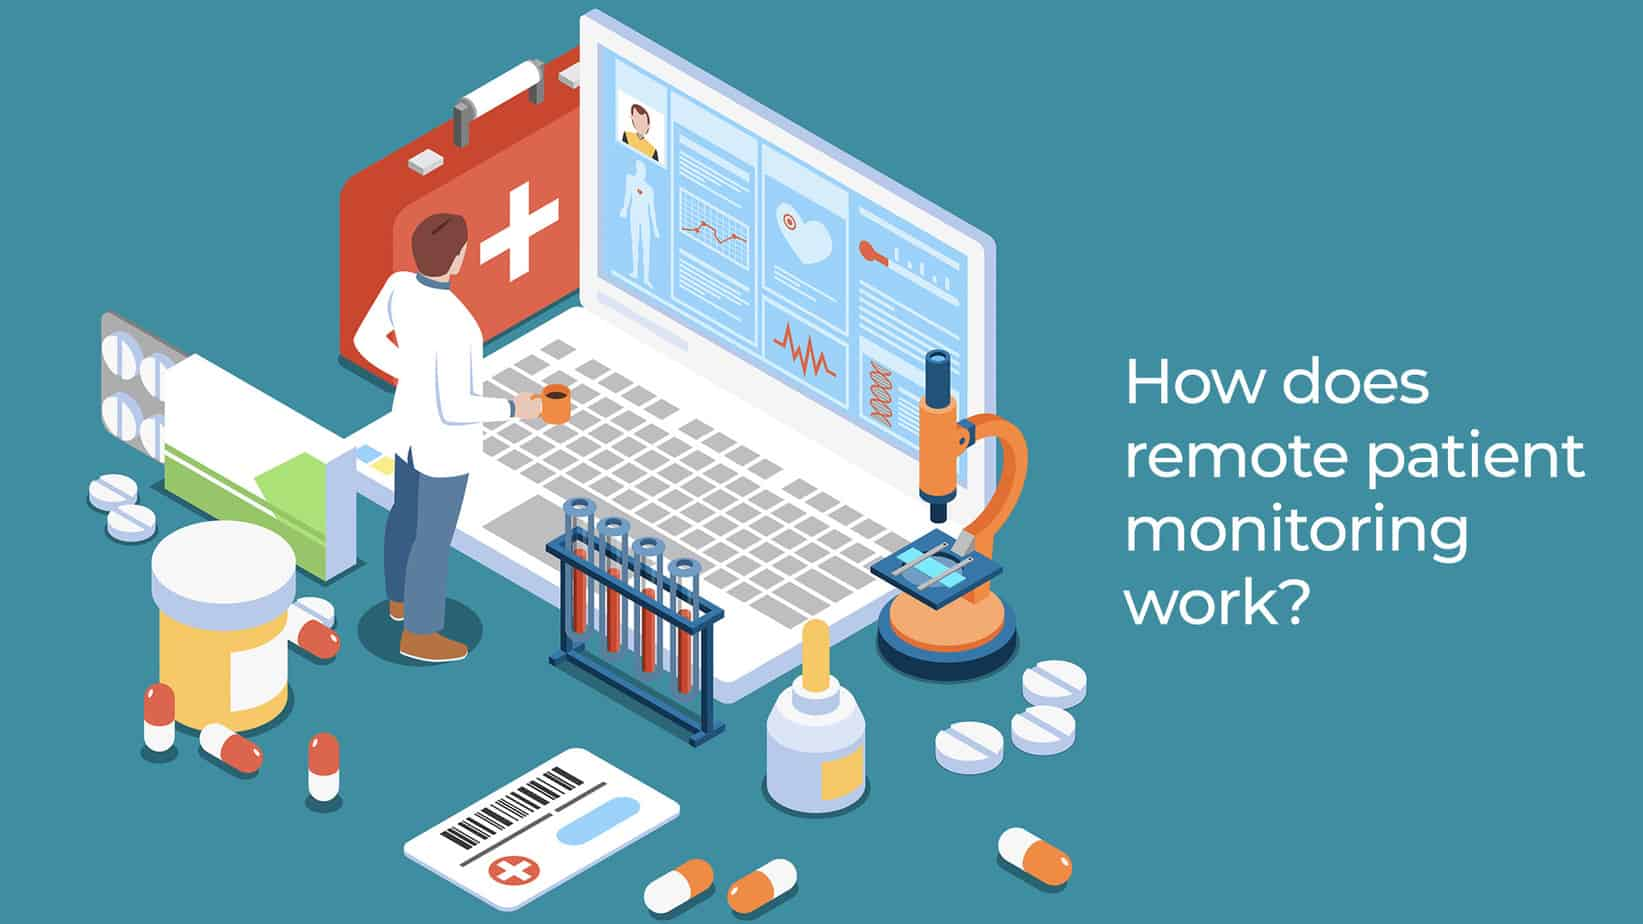 How does remote patient monitoring work